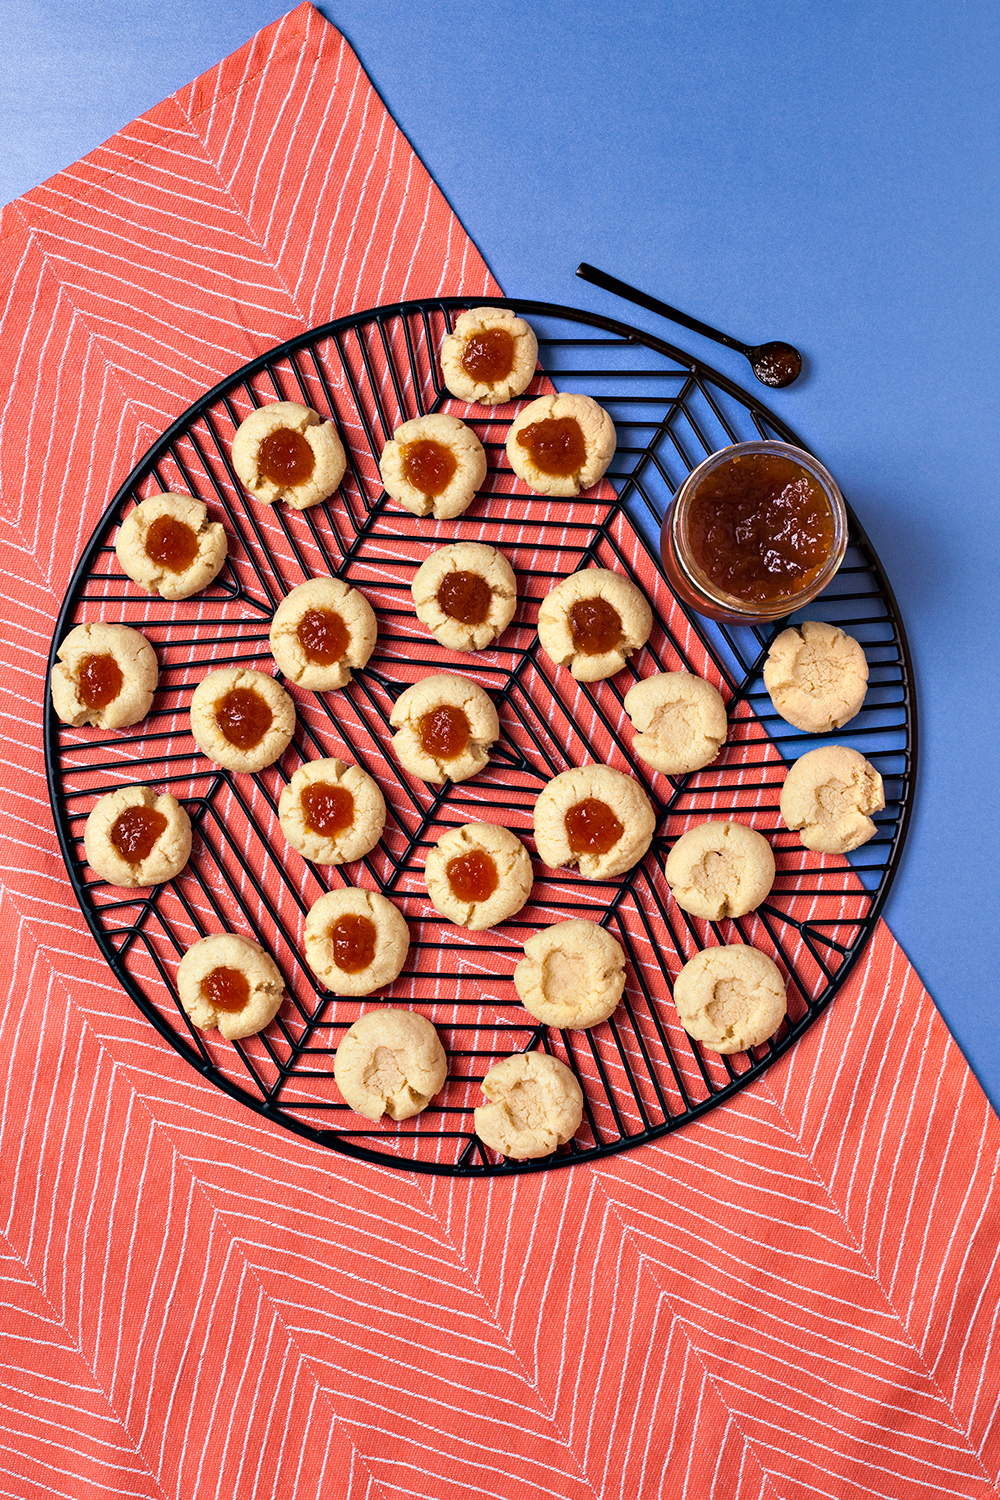 Gluten-free Almond Thumbprints - with Caramel Apple + Ginger Fruit Spread